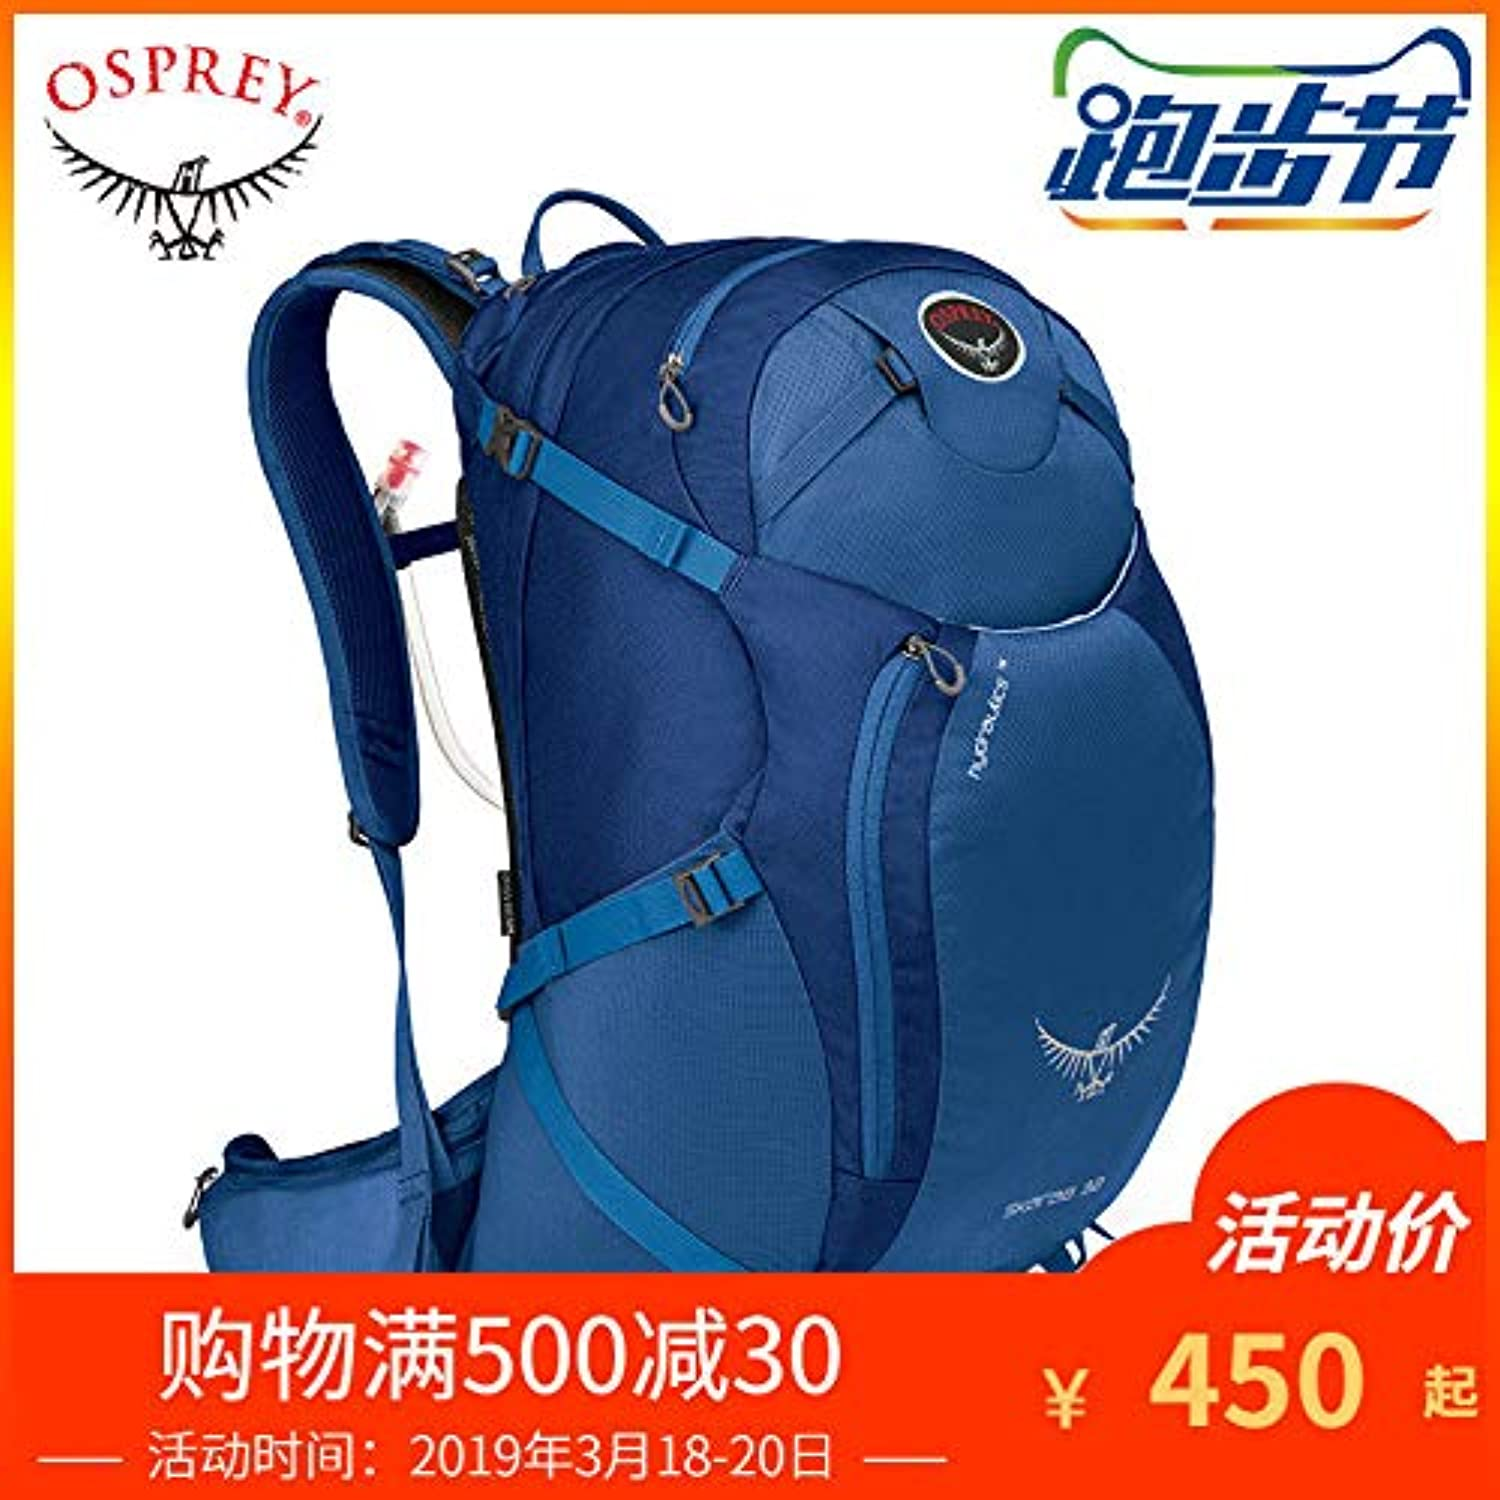 d1f84776e4131c Osprey Backpack Beetle Male Outdoor Hiking Riding Backpack ...